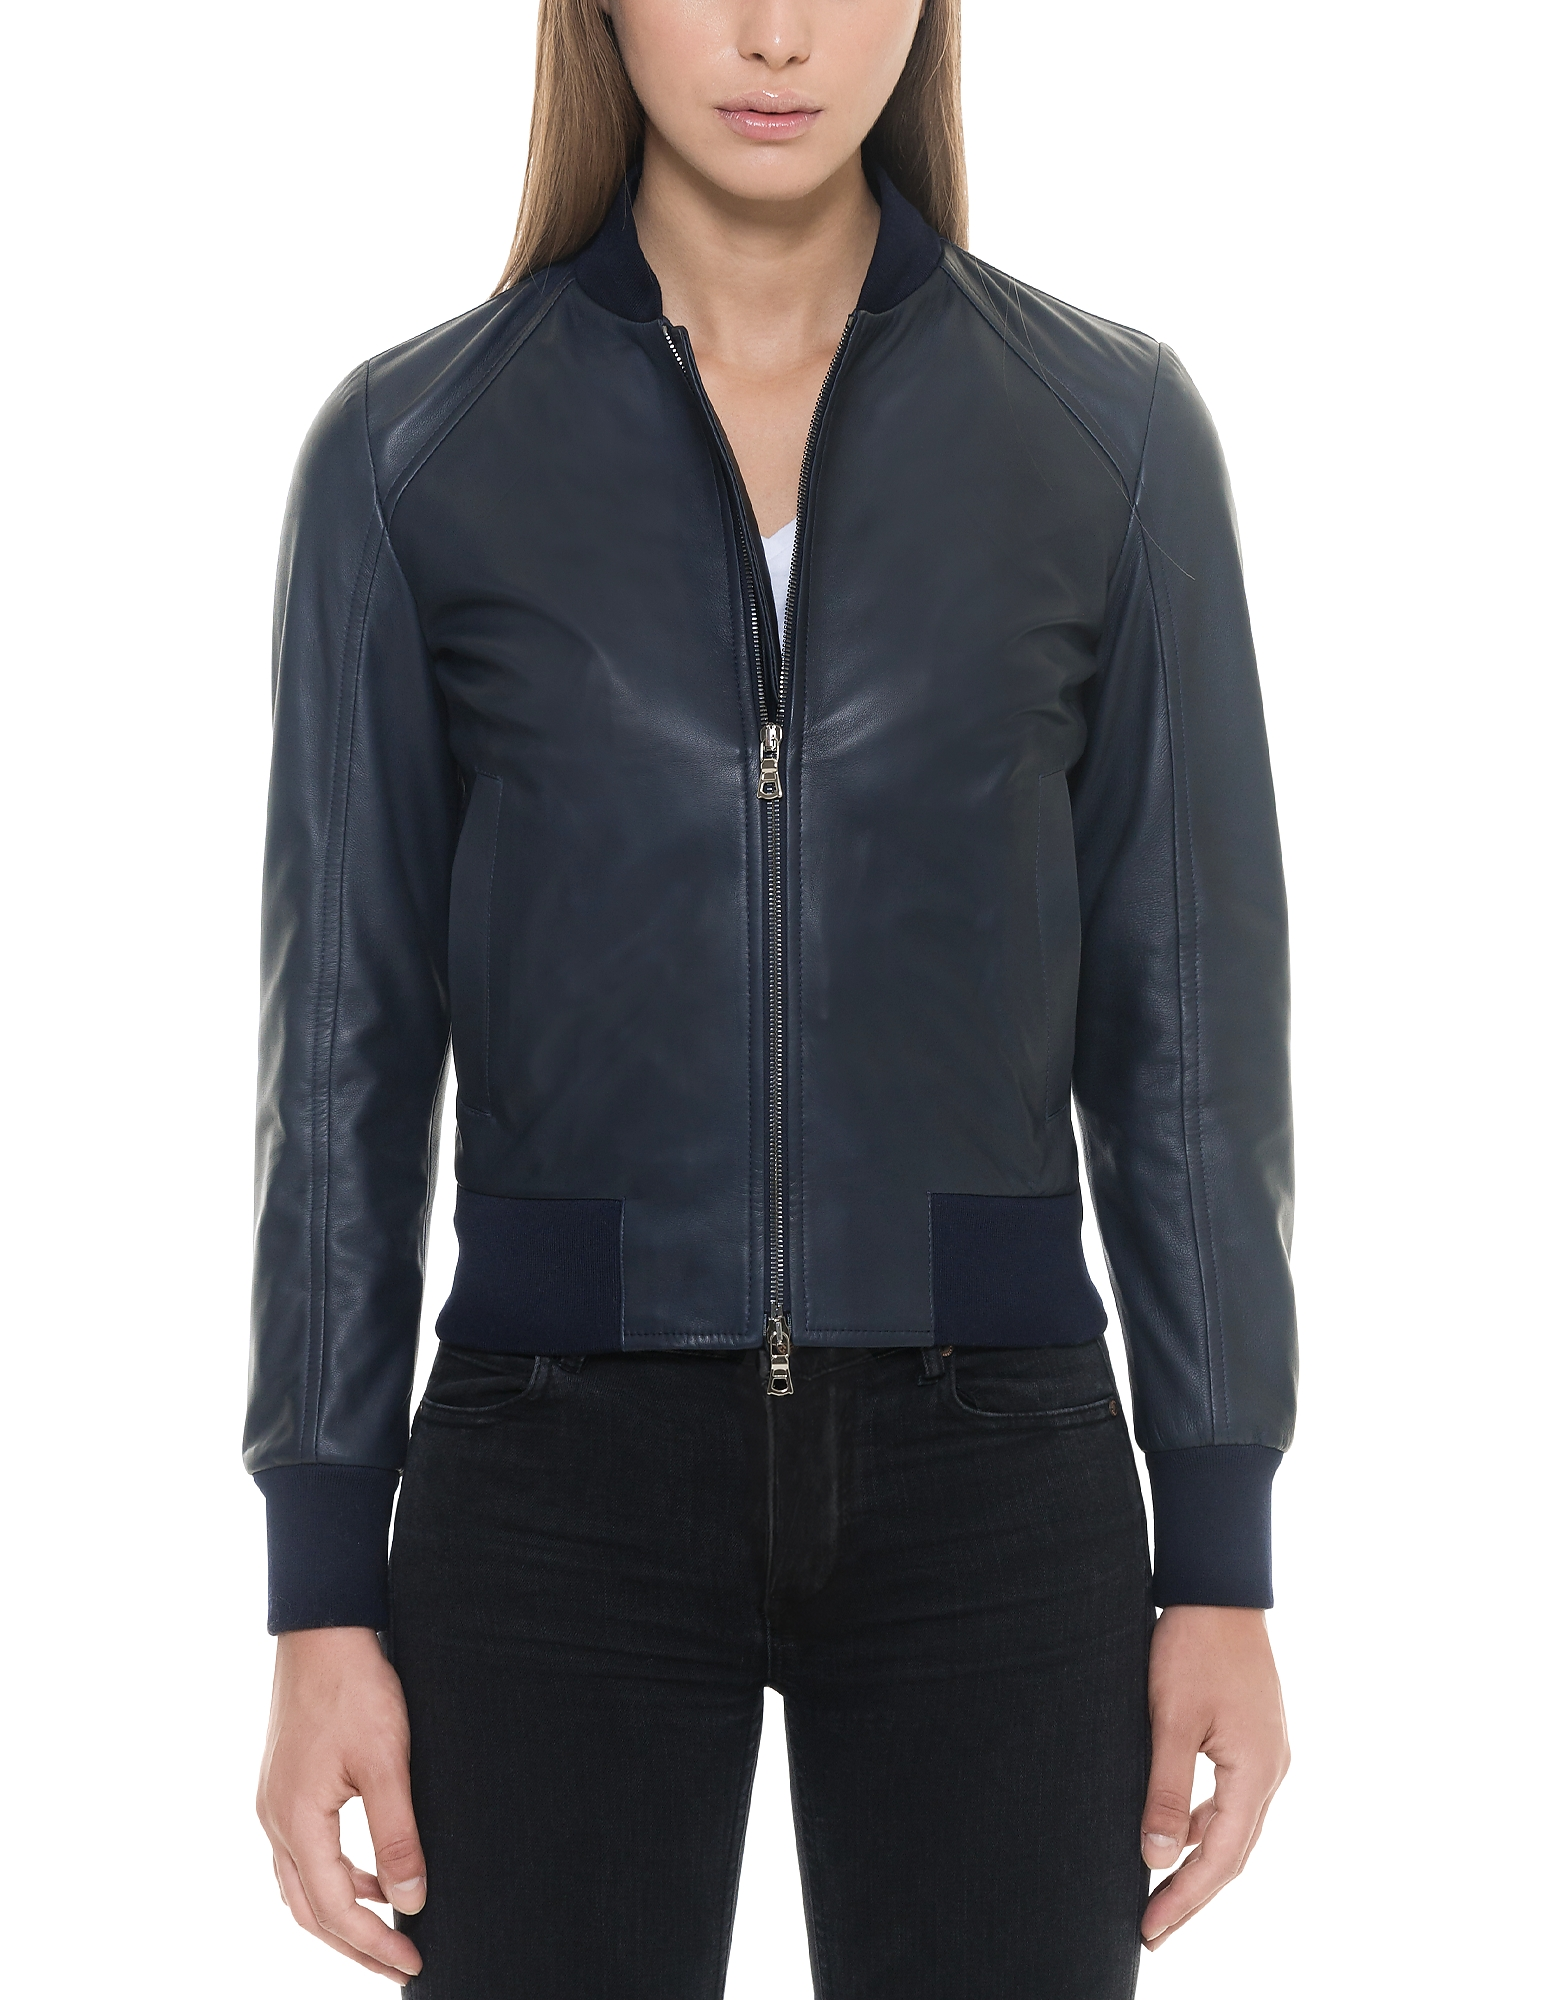 Forzieri Leather Jackets, Midnight Blue Leather Women's Bomber Jacket